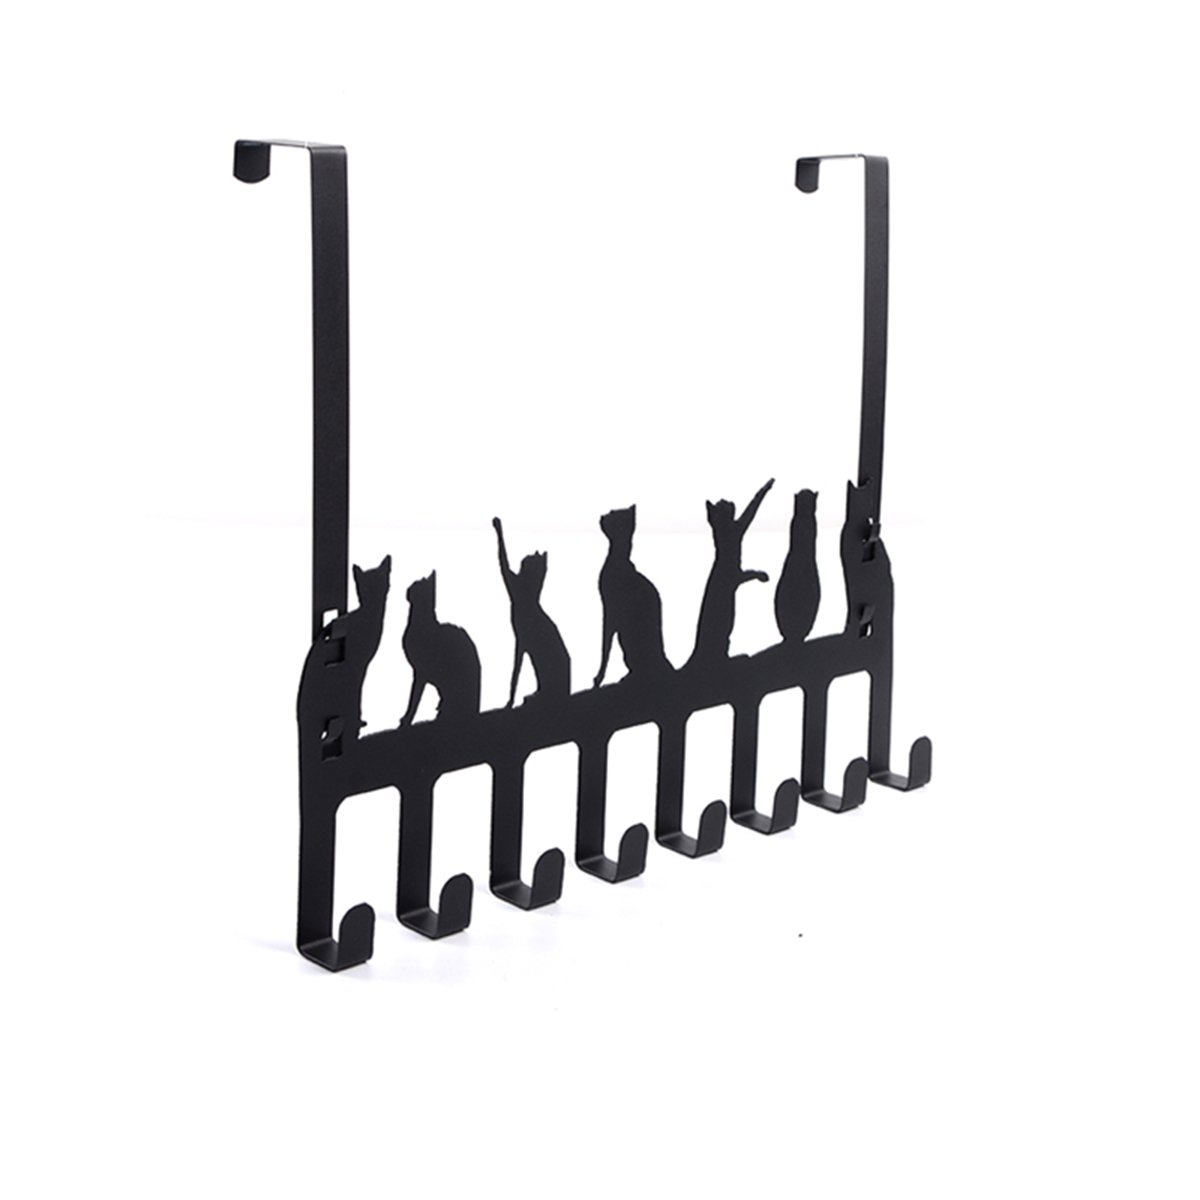 Over The Door Organizer, Heavy Duty Organizer Rack for Towel, Coat, Bag - 8 Hooks, (Black)